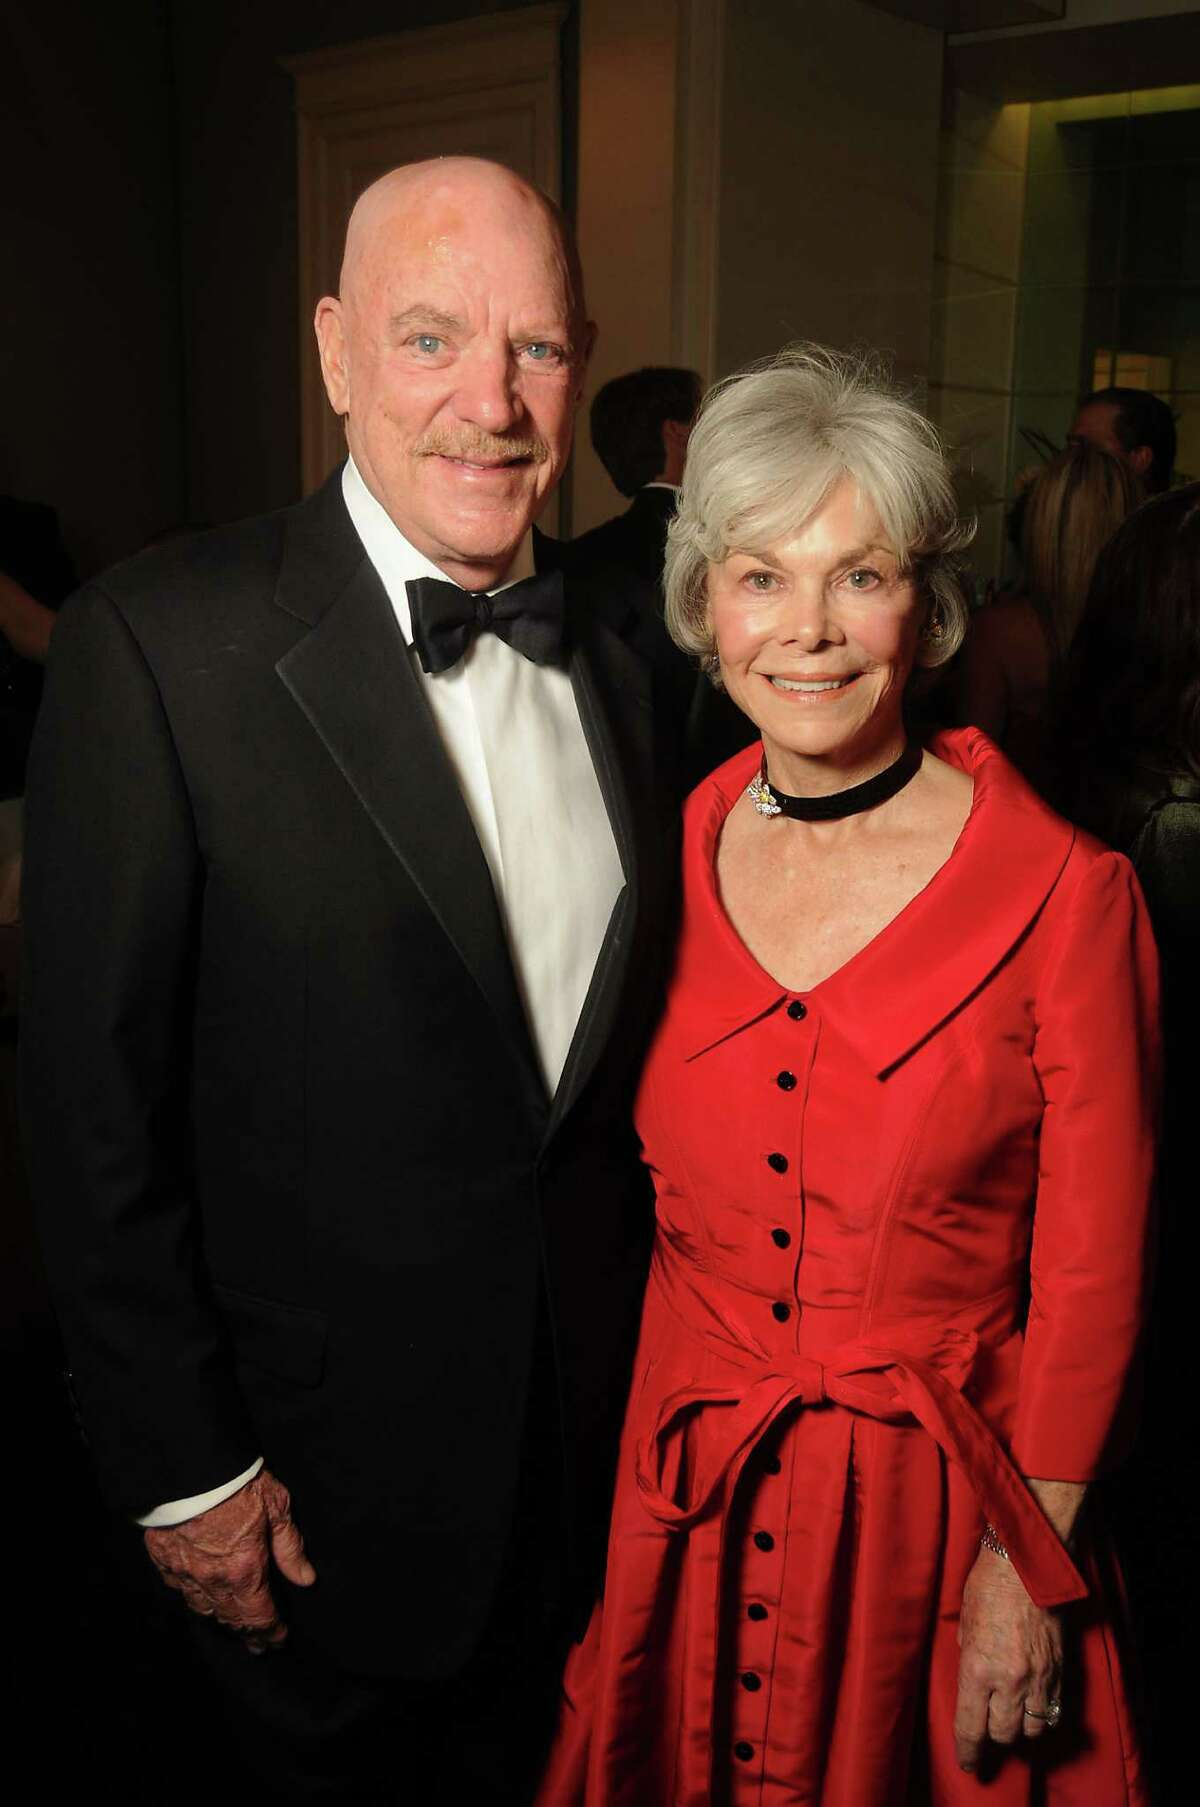 Honorees Bob and Janice McNair at UNICEF's 2nd Annual Audrey Hepburn Society Ball. Honorees Janice and Bob McNair at the Audrey Hepburn Society Ball at the Wortham Theater Tuesday Oct 14, 2014.(Dave Rossman photo)